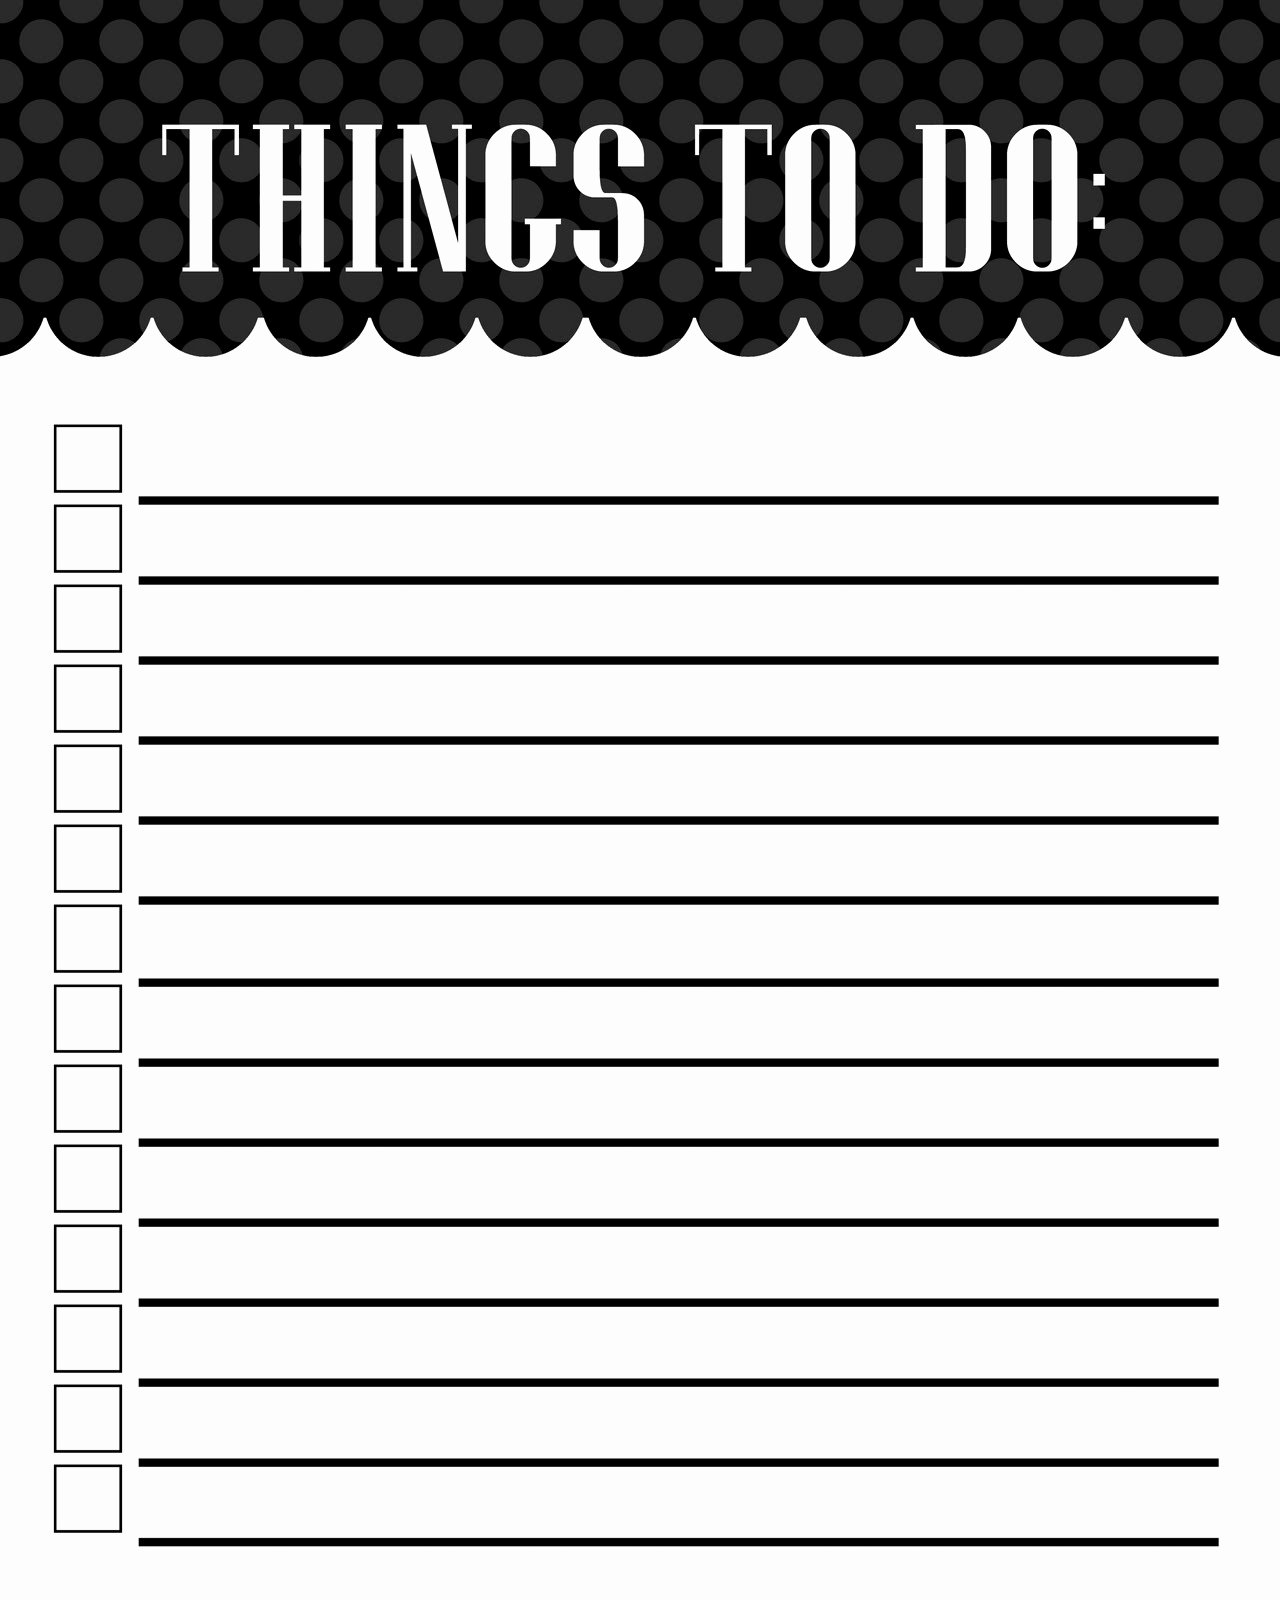 Things to Do List Template Lovely Mckell S Closet to Do List